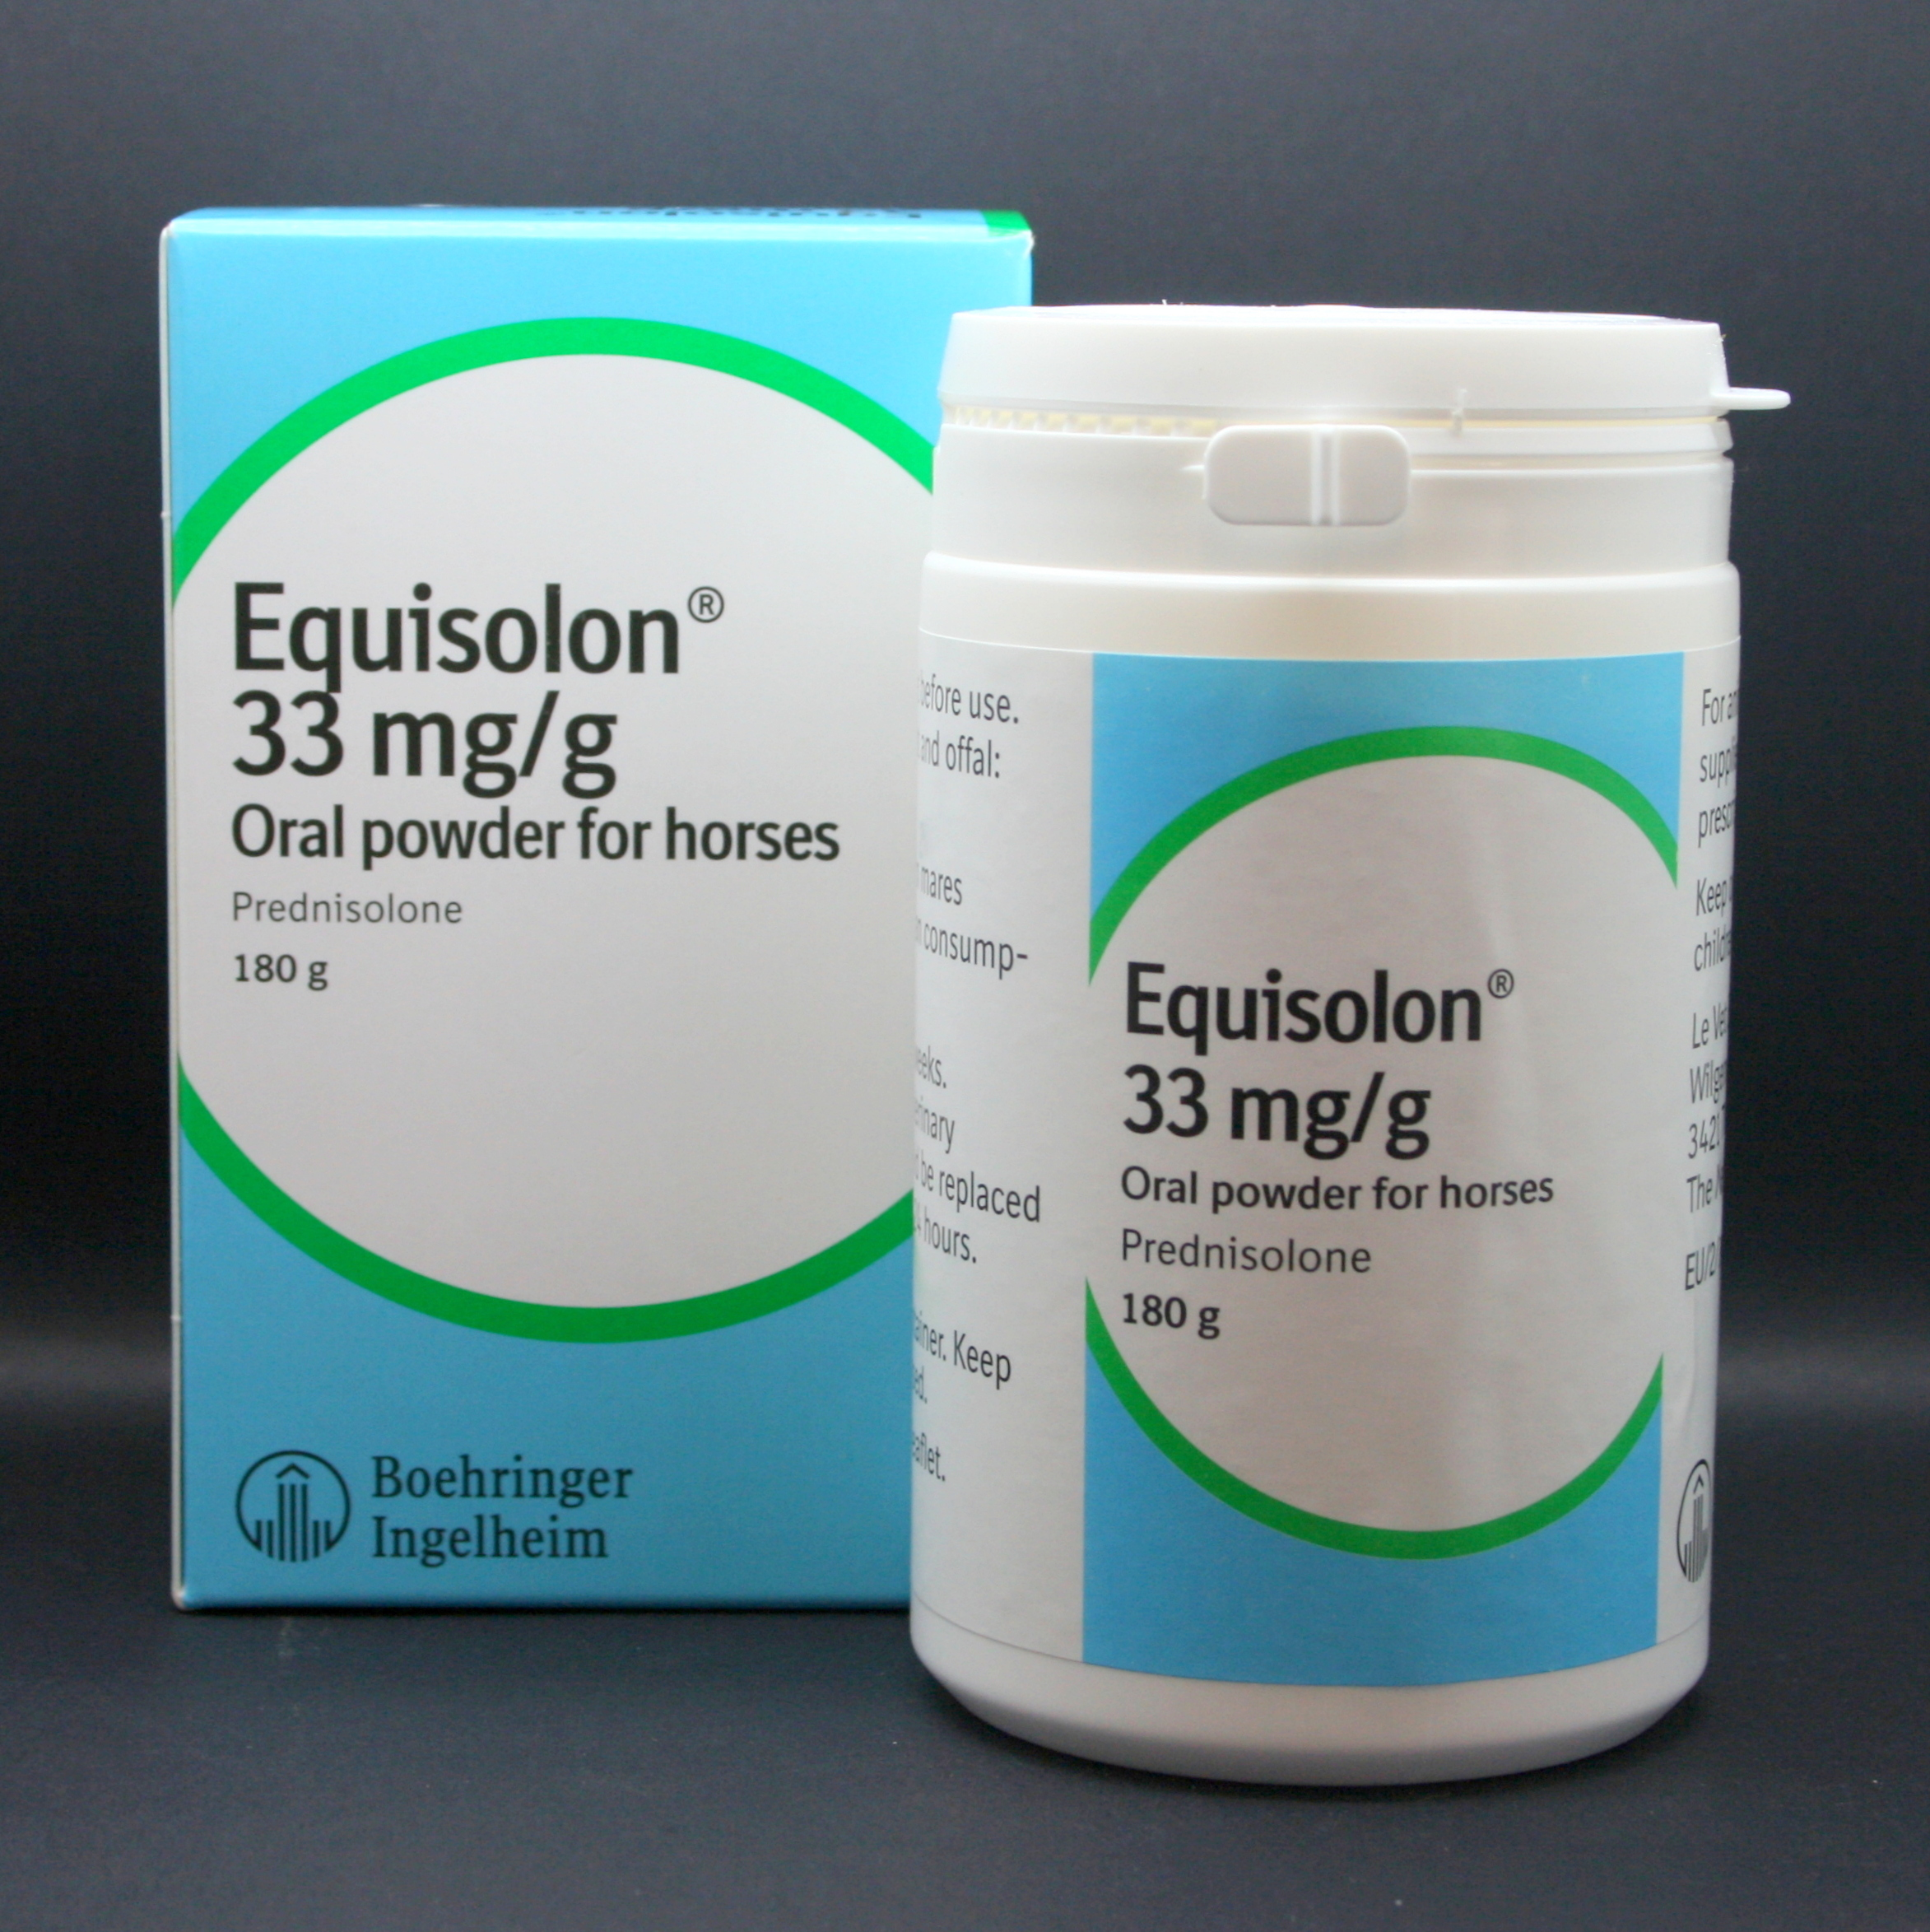 Equisolon 33 mg/g oral powder for horses 180g